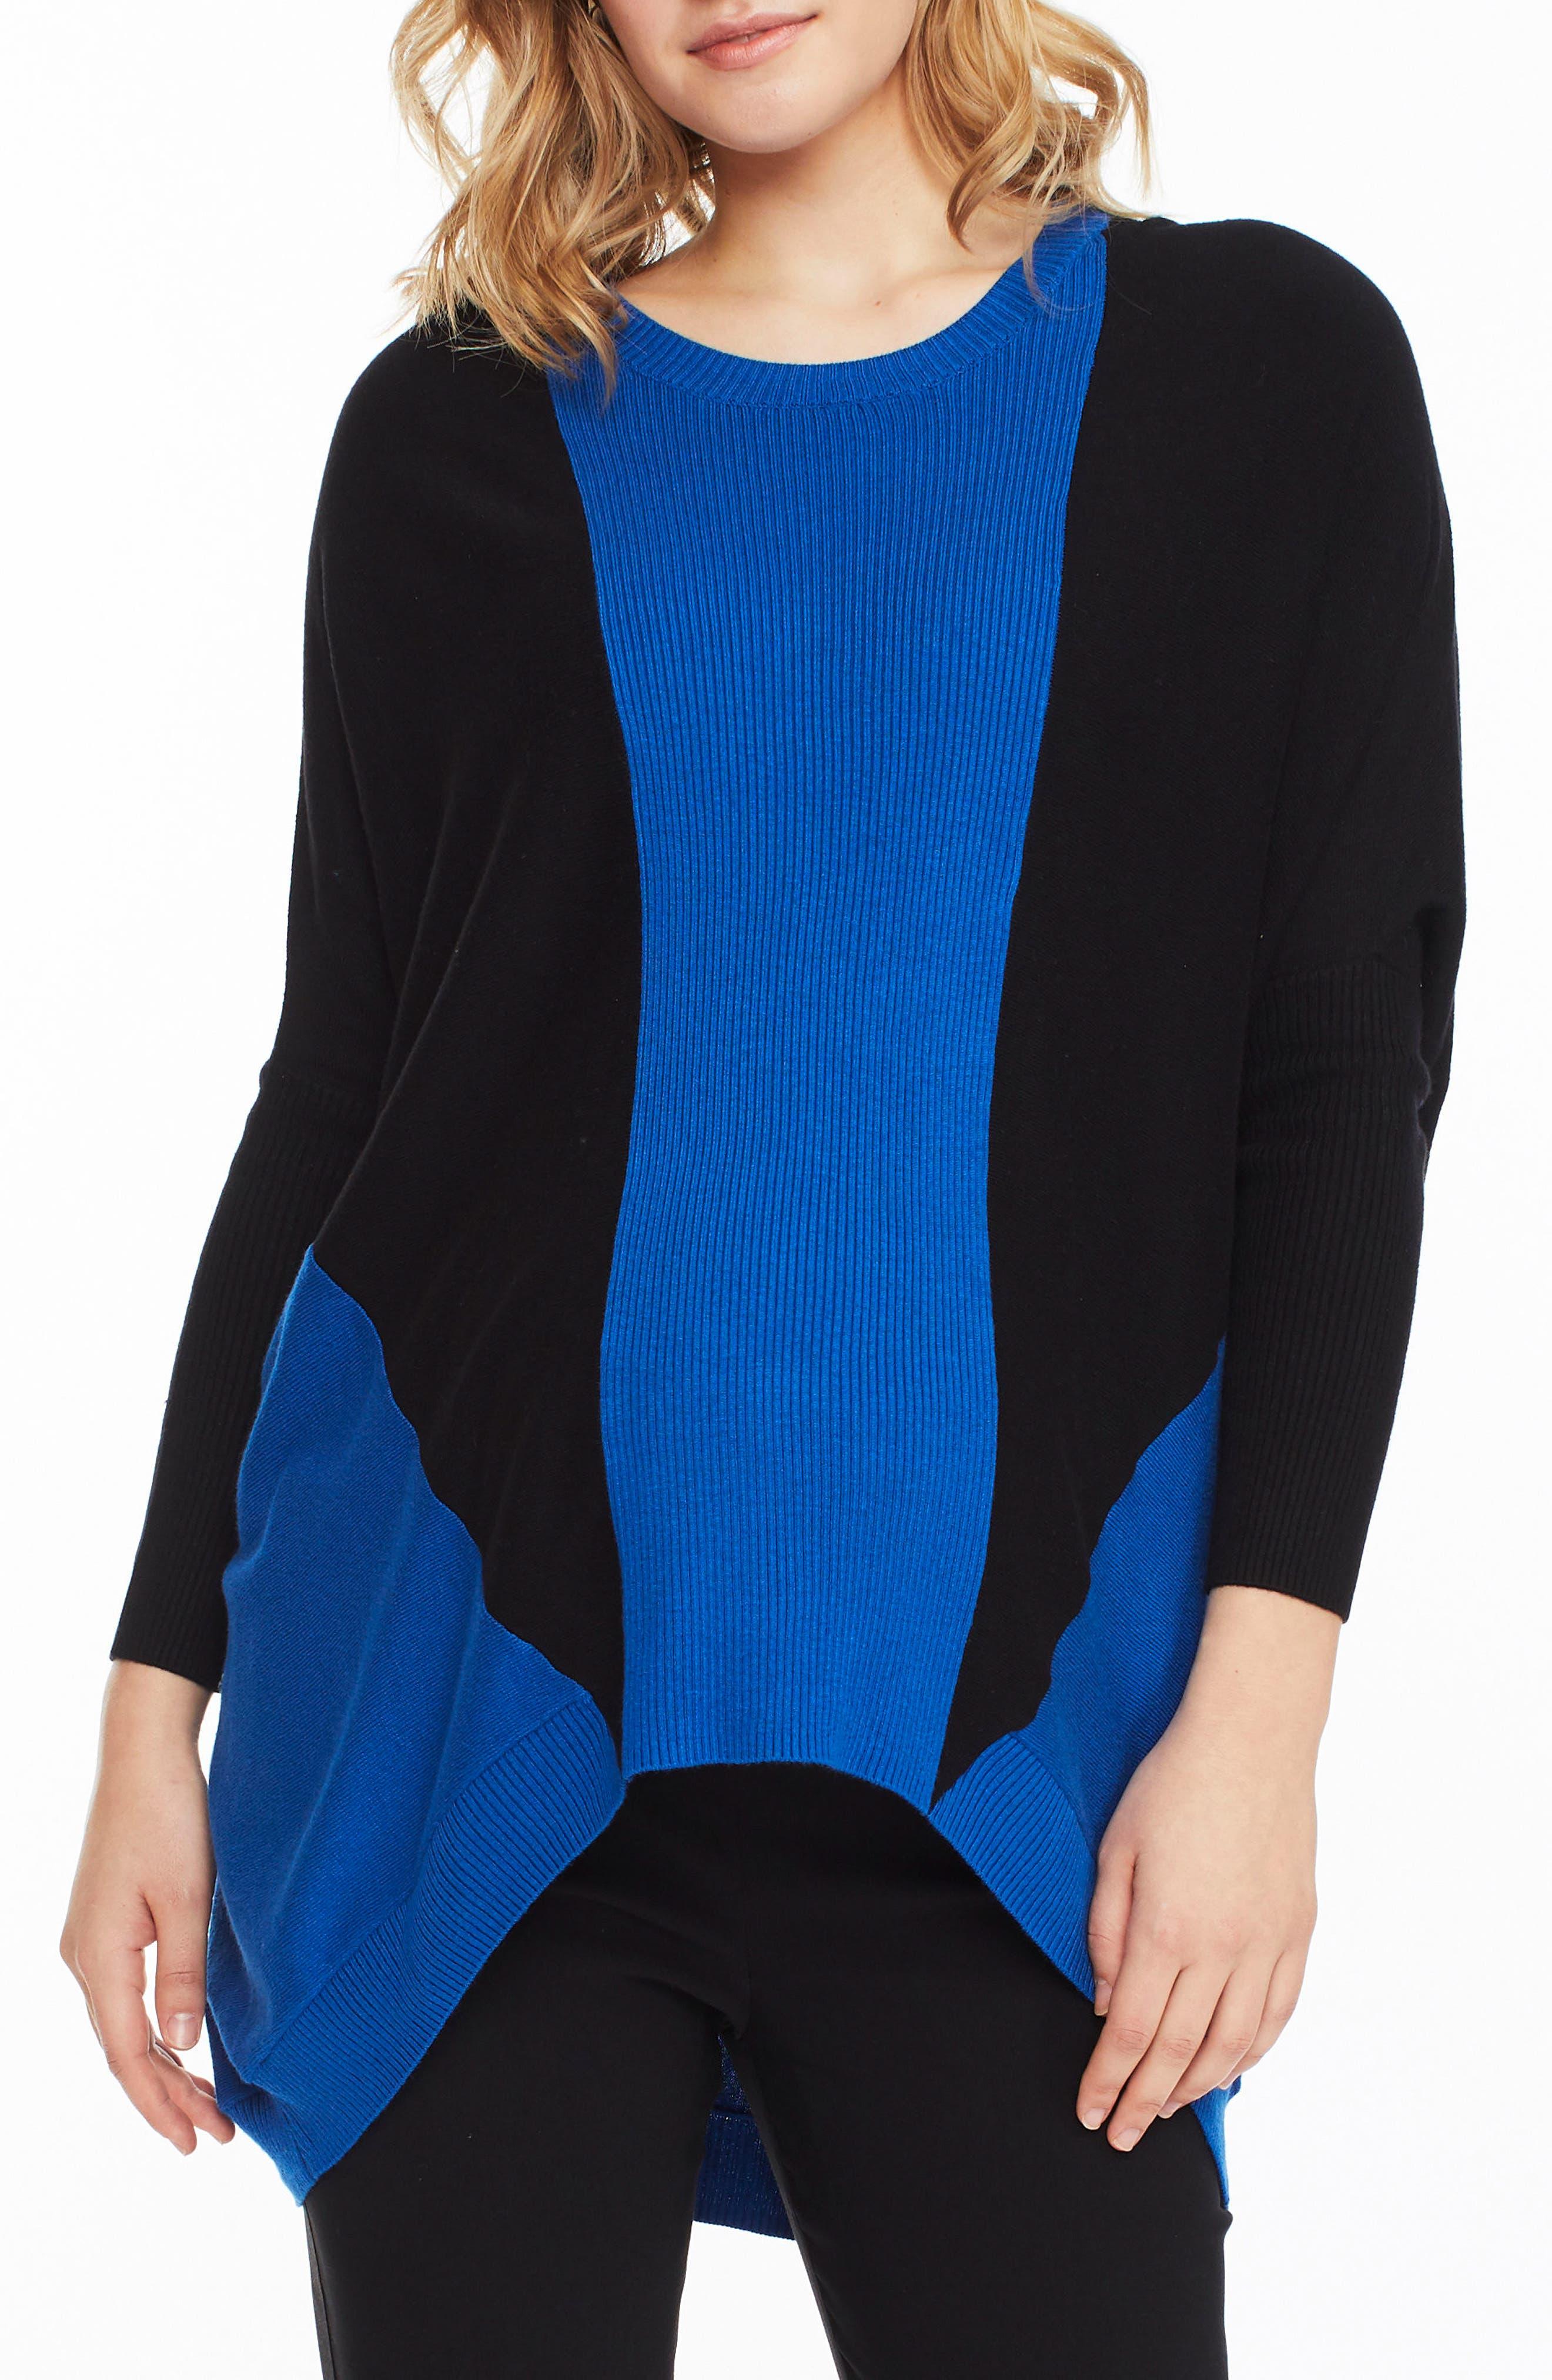 Hazel Colorblock Maternity Sweater,                             Main thumbnail 1, color,                             INDIGO / BLACK